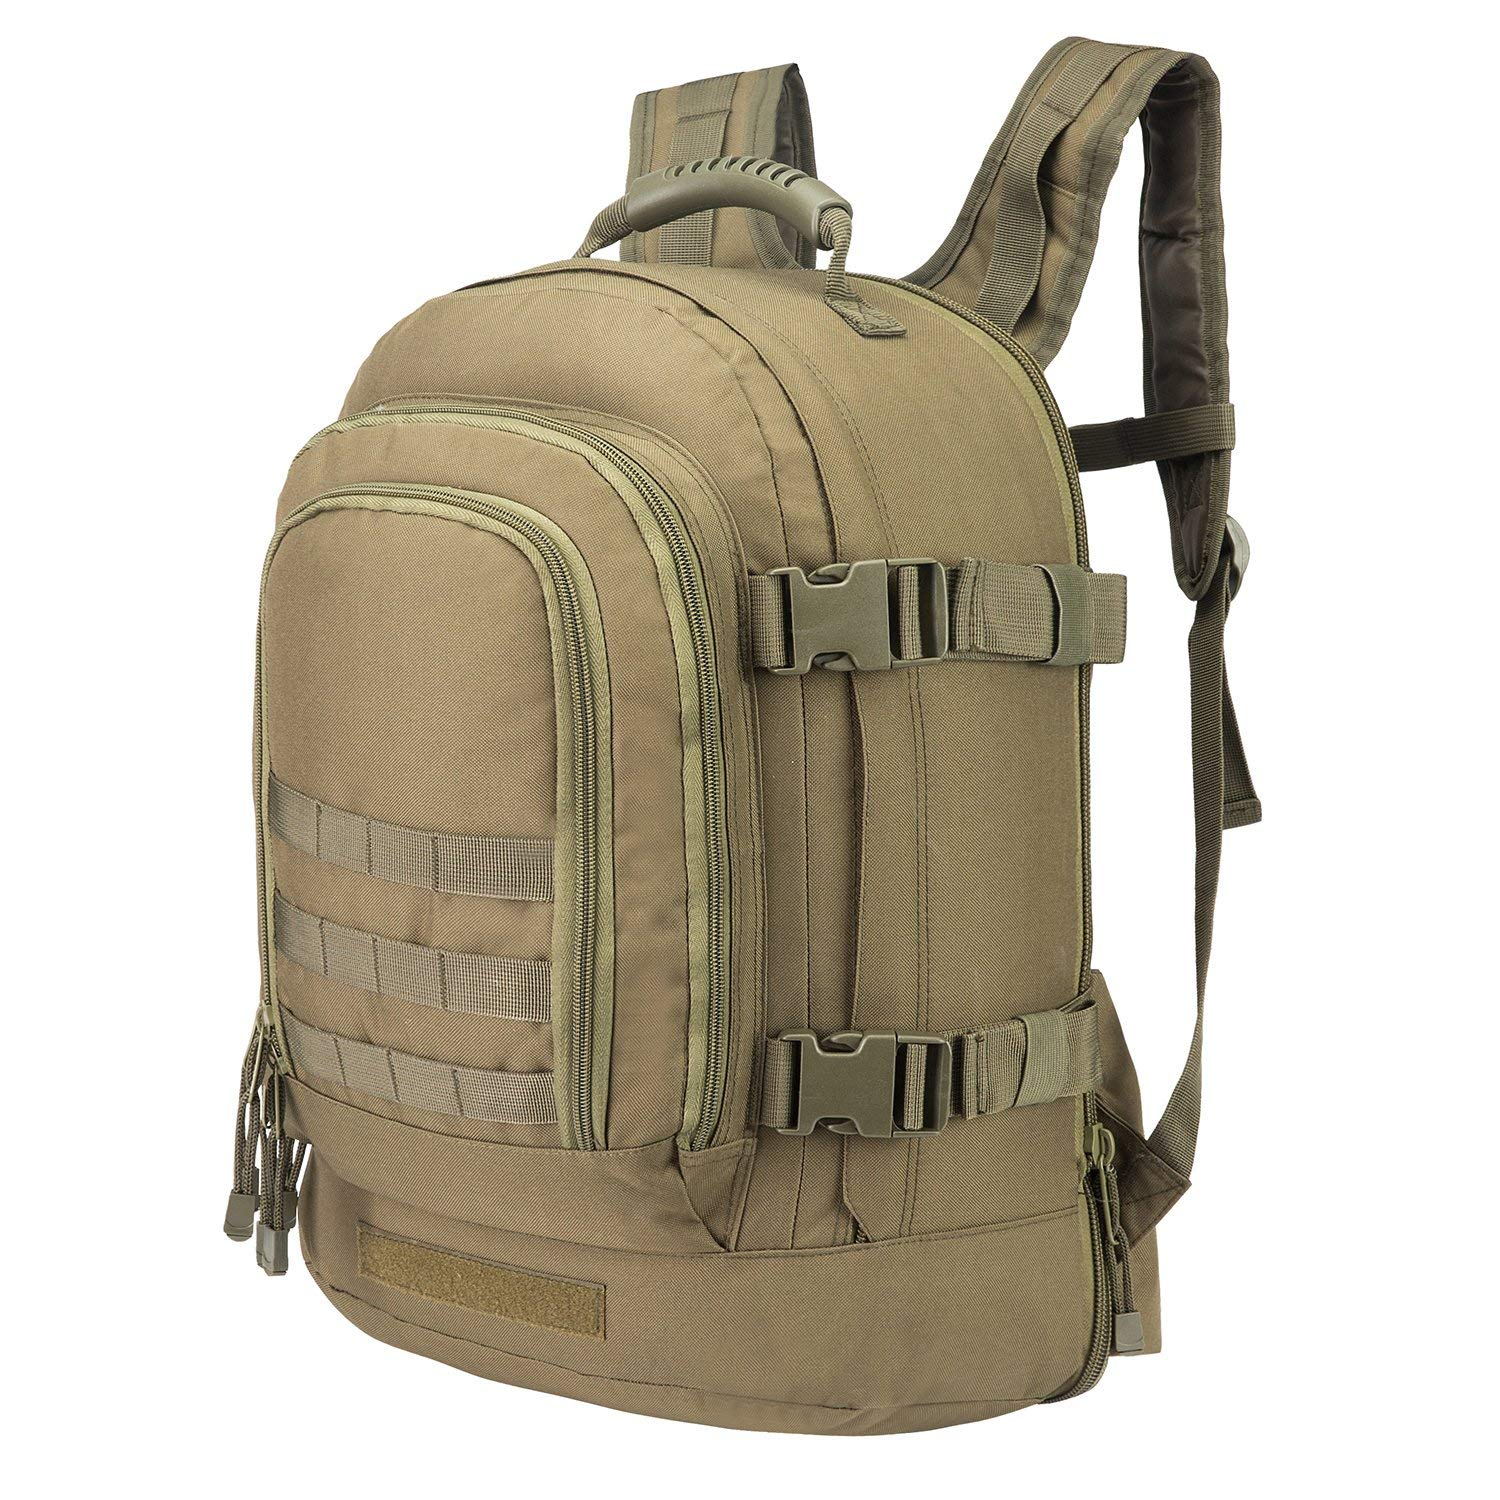 73c799dce361 Get Quotations · Expandable Adjustable Backpack With Waist Strap 39 - 64 L  Large 3 Day Military Tactical Rucksack